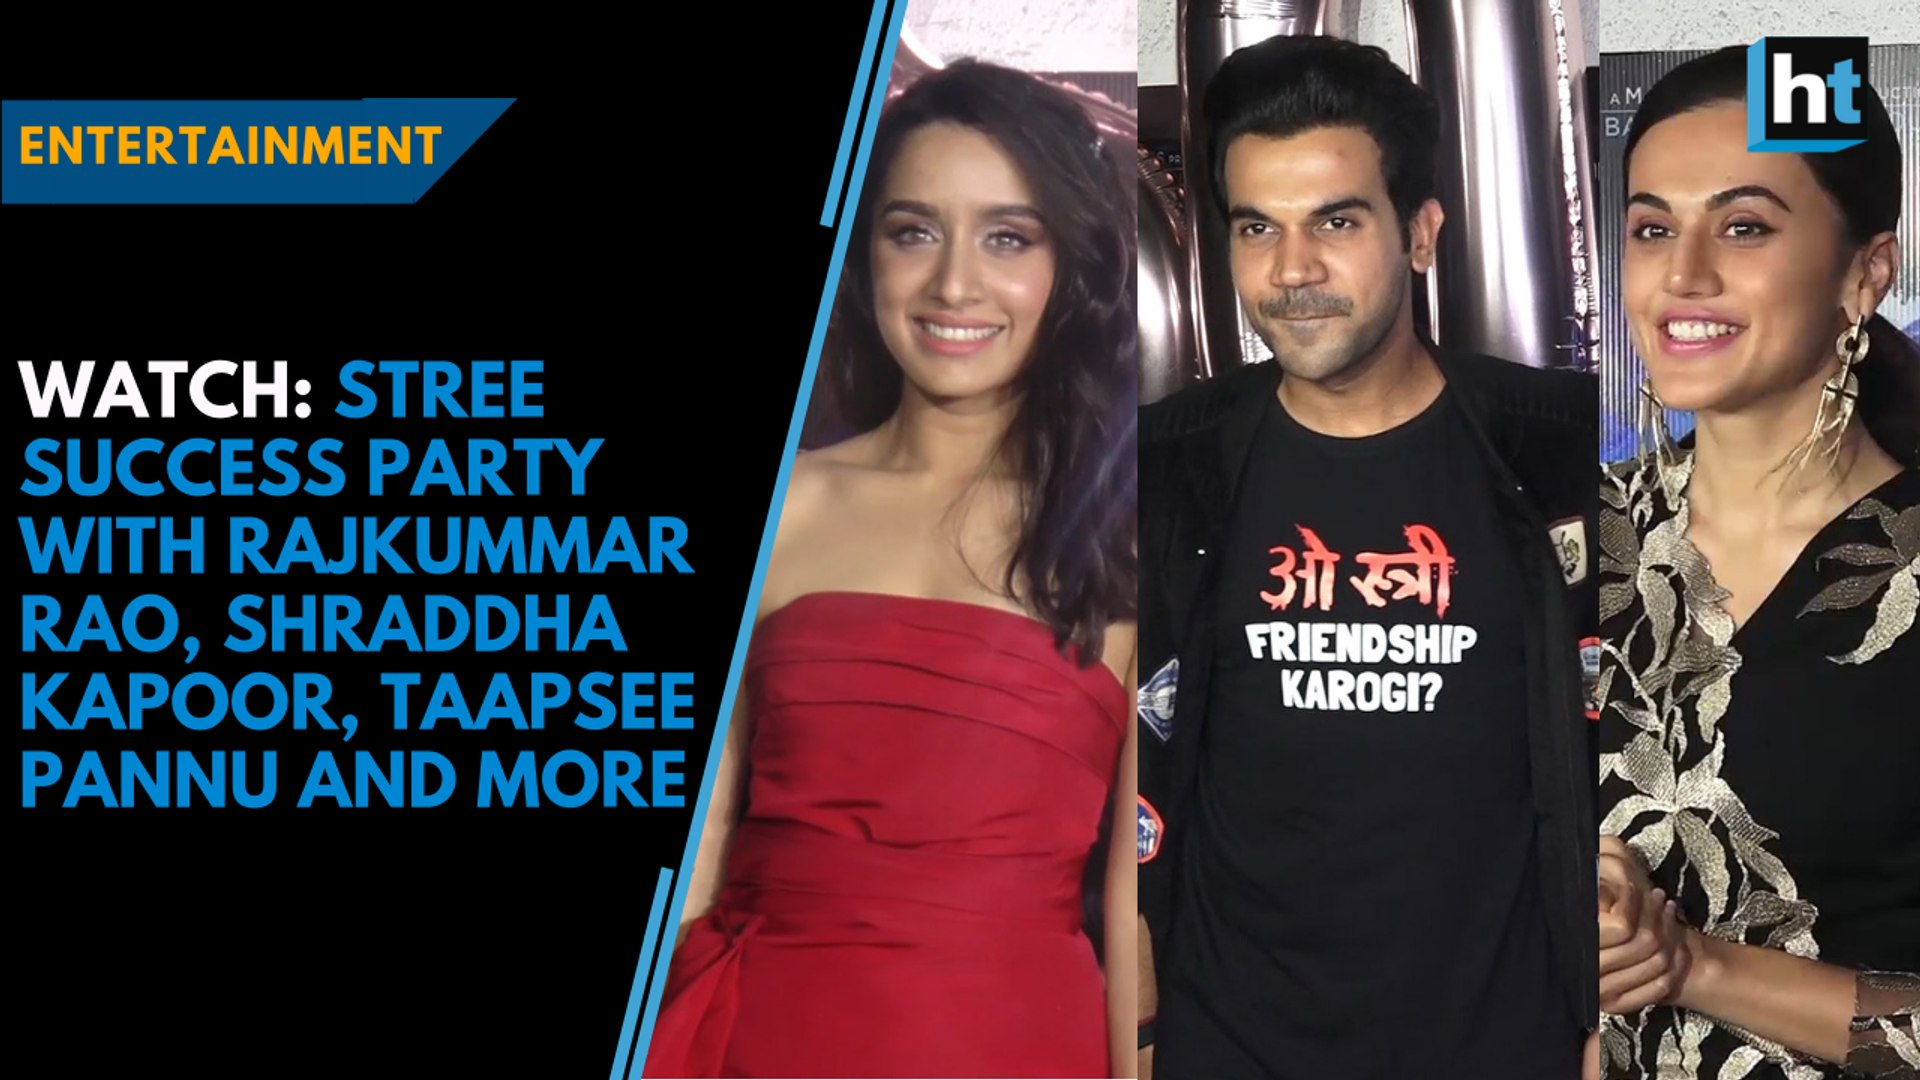 Watch: Stree success party with Rajkummar Rao, Shraddha Kapoor, Taapsee Pannu and more